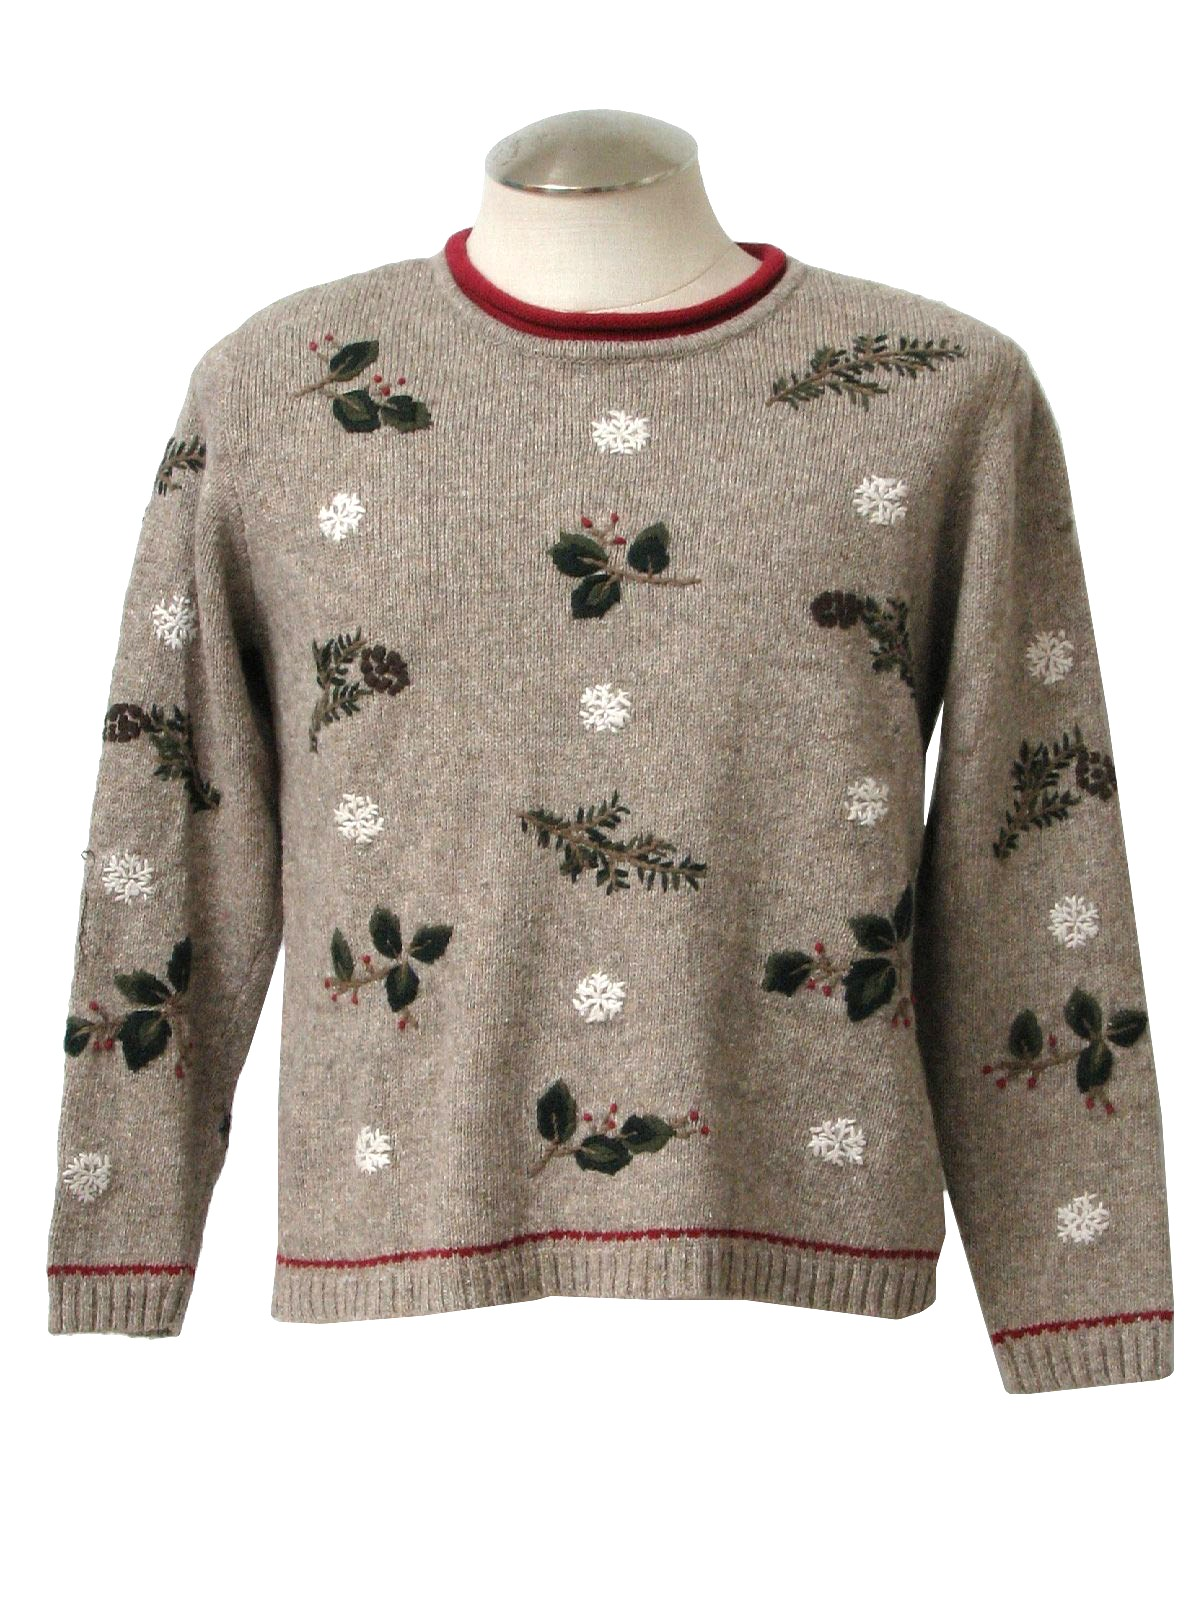 Womens ugly christmas sweater christopher banks for Over the top ugly christmas sweaters